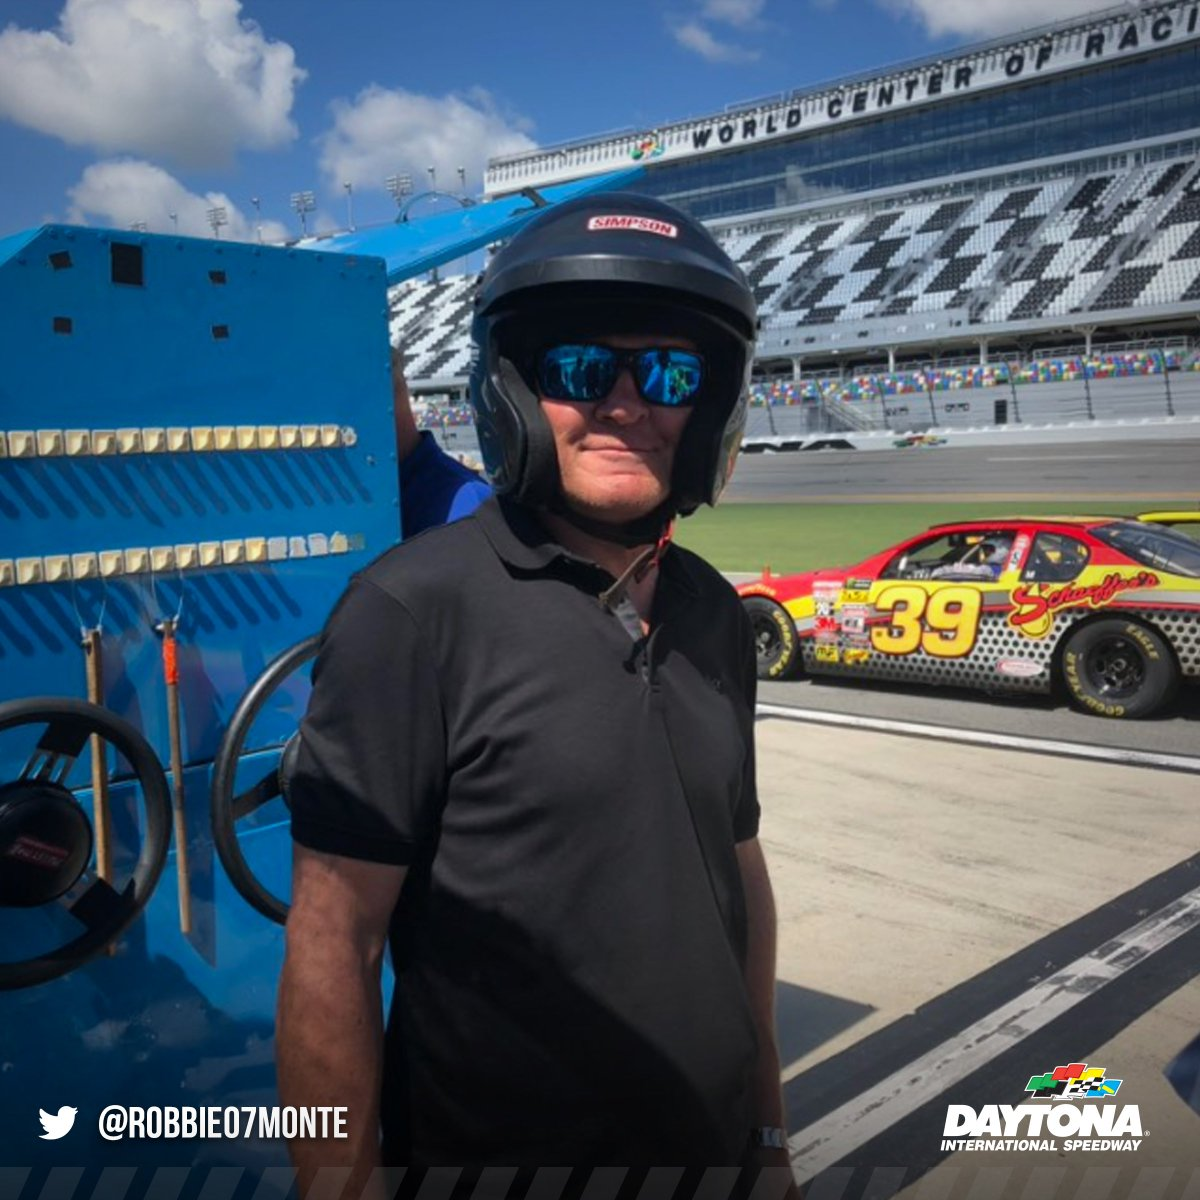 One-of-a-kind experiences happen HERE!  #FanFriday | @NASCARRaceExp